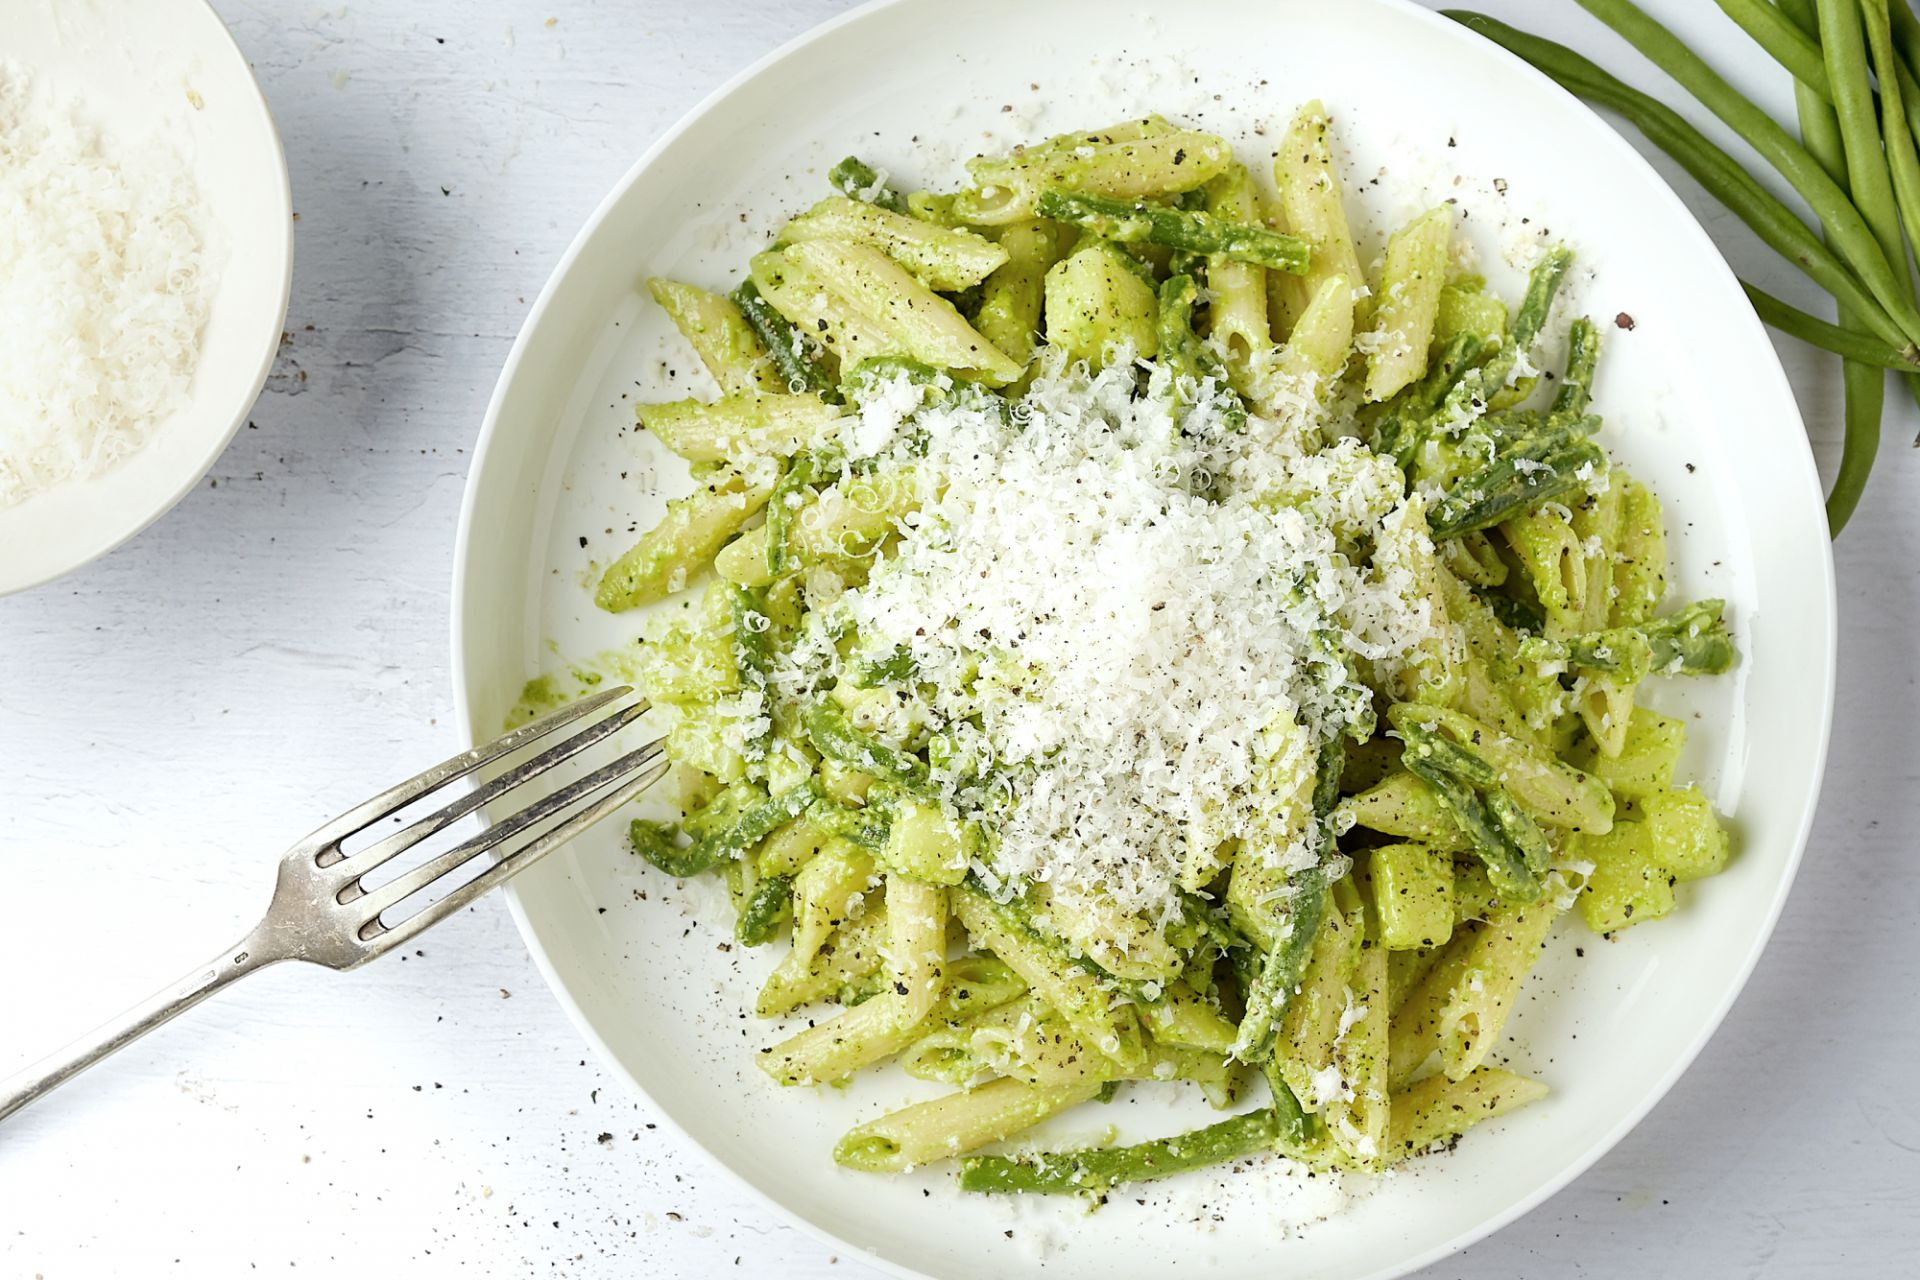 De authentieke pasta pesto alla Genovese